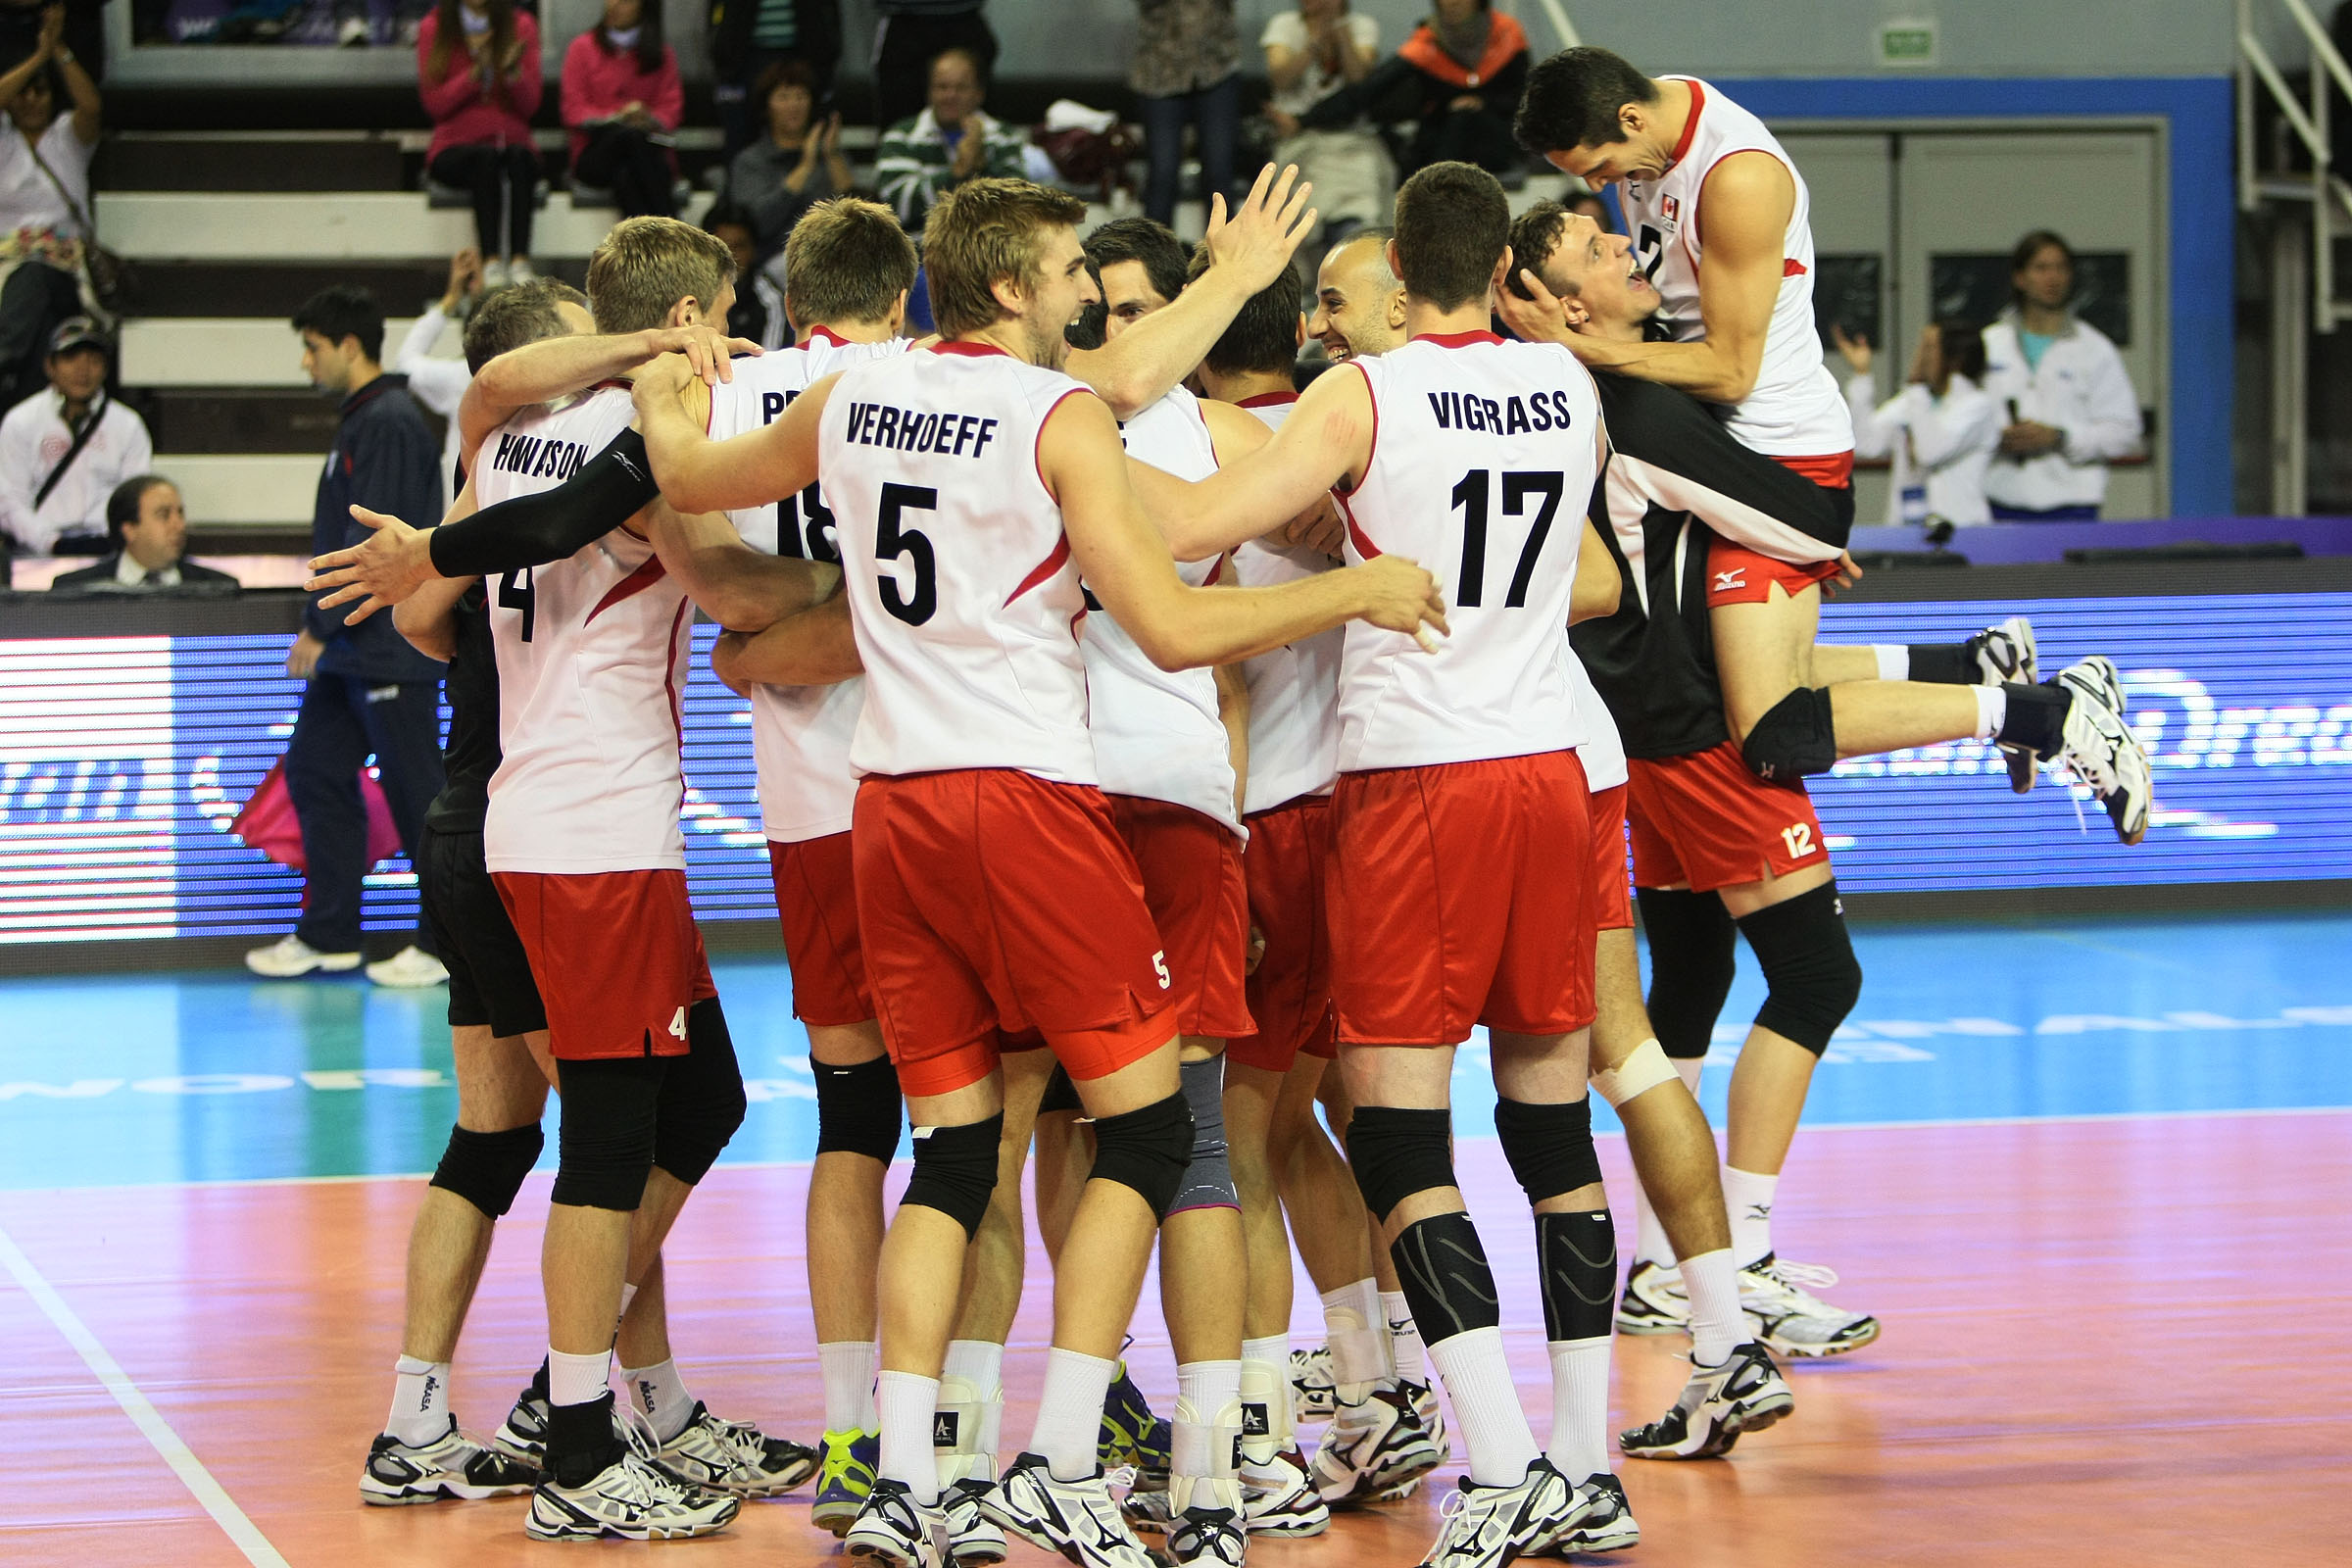 Canada celebrates after defeating Russia 3-2 at the World League Finals. Could the team be heading to another historical finish? Photo: FIVB